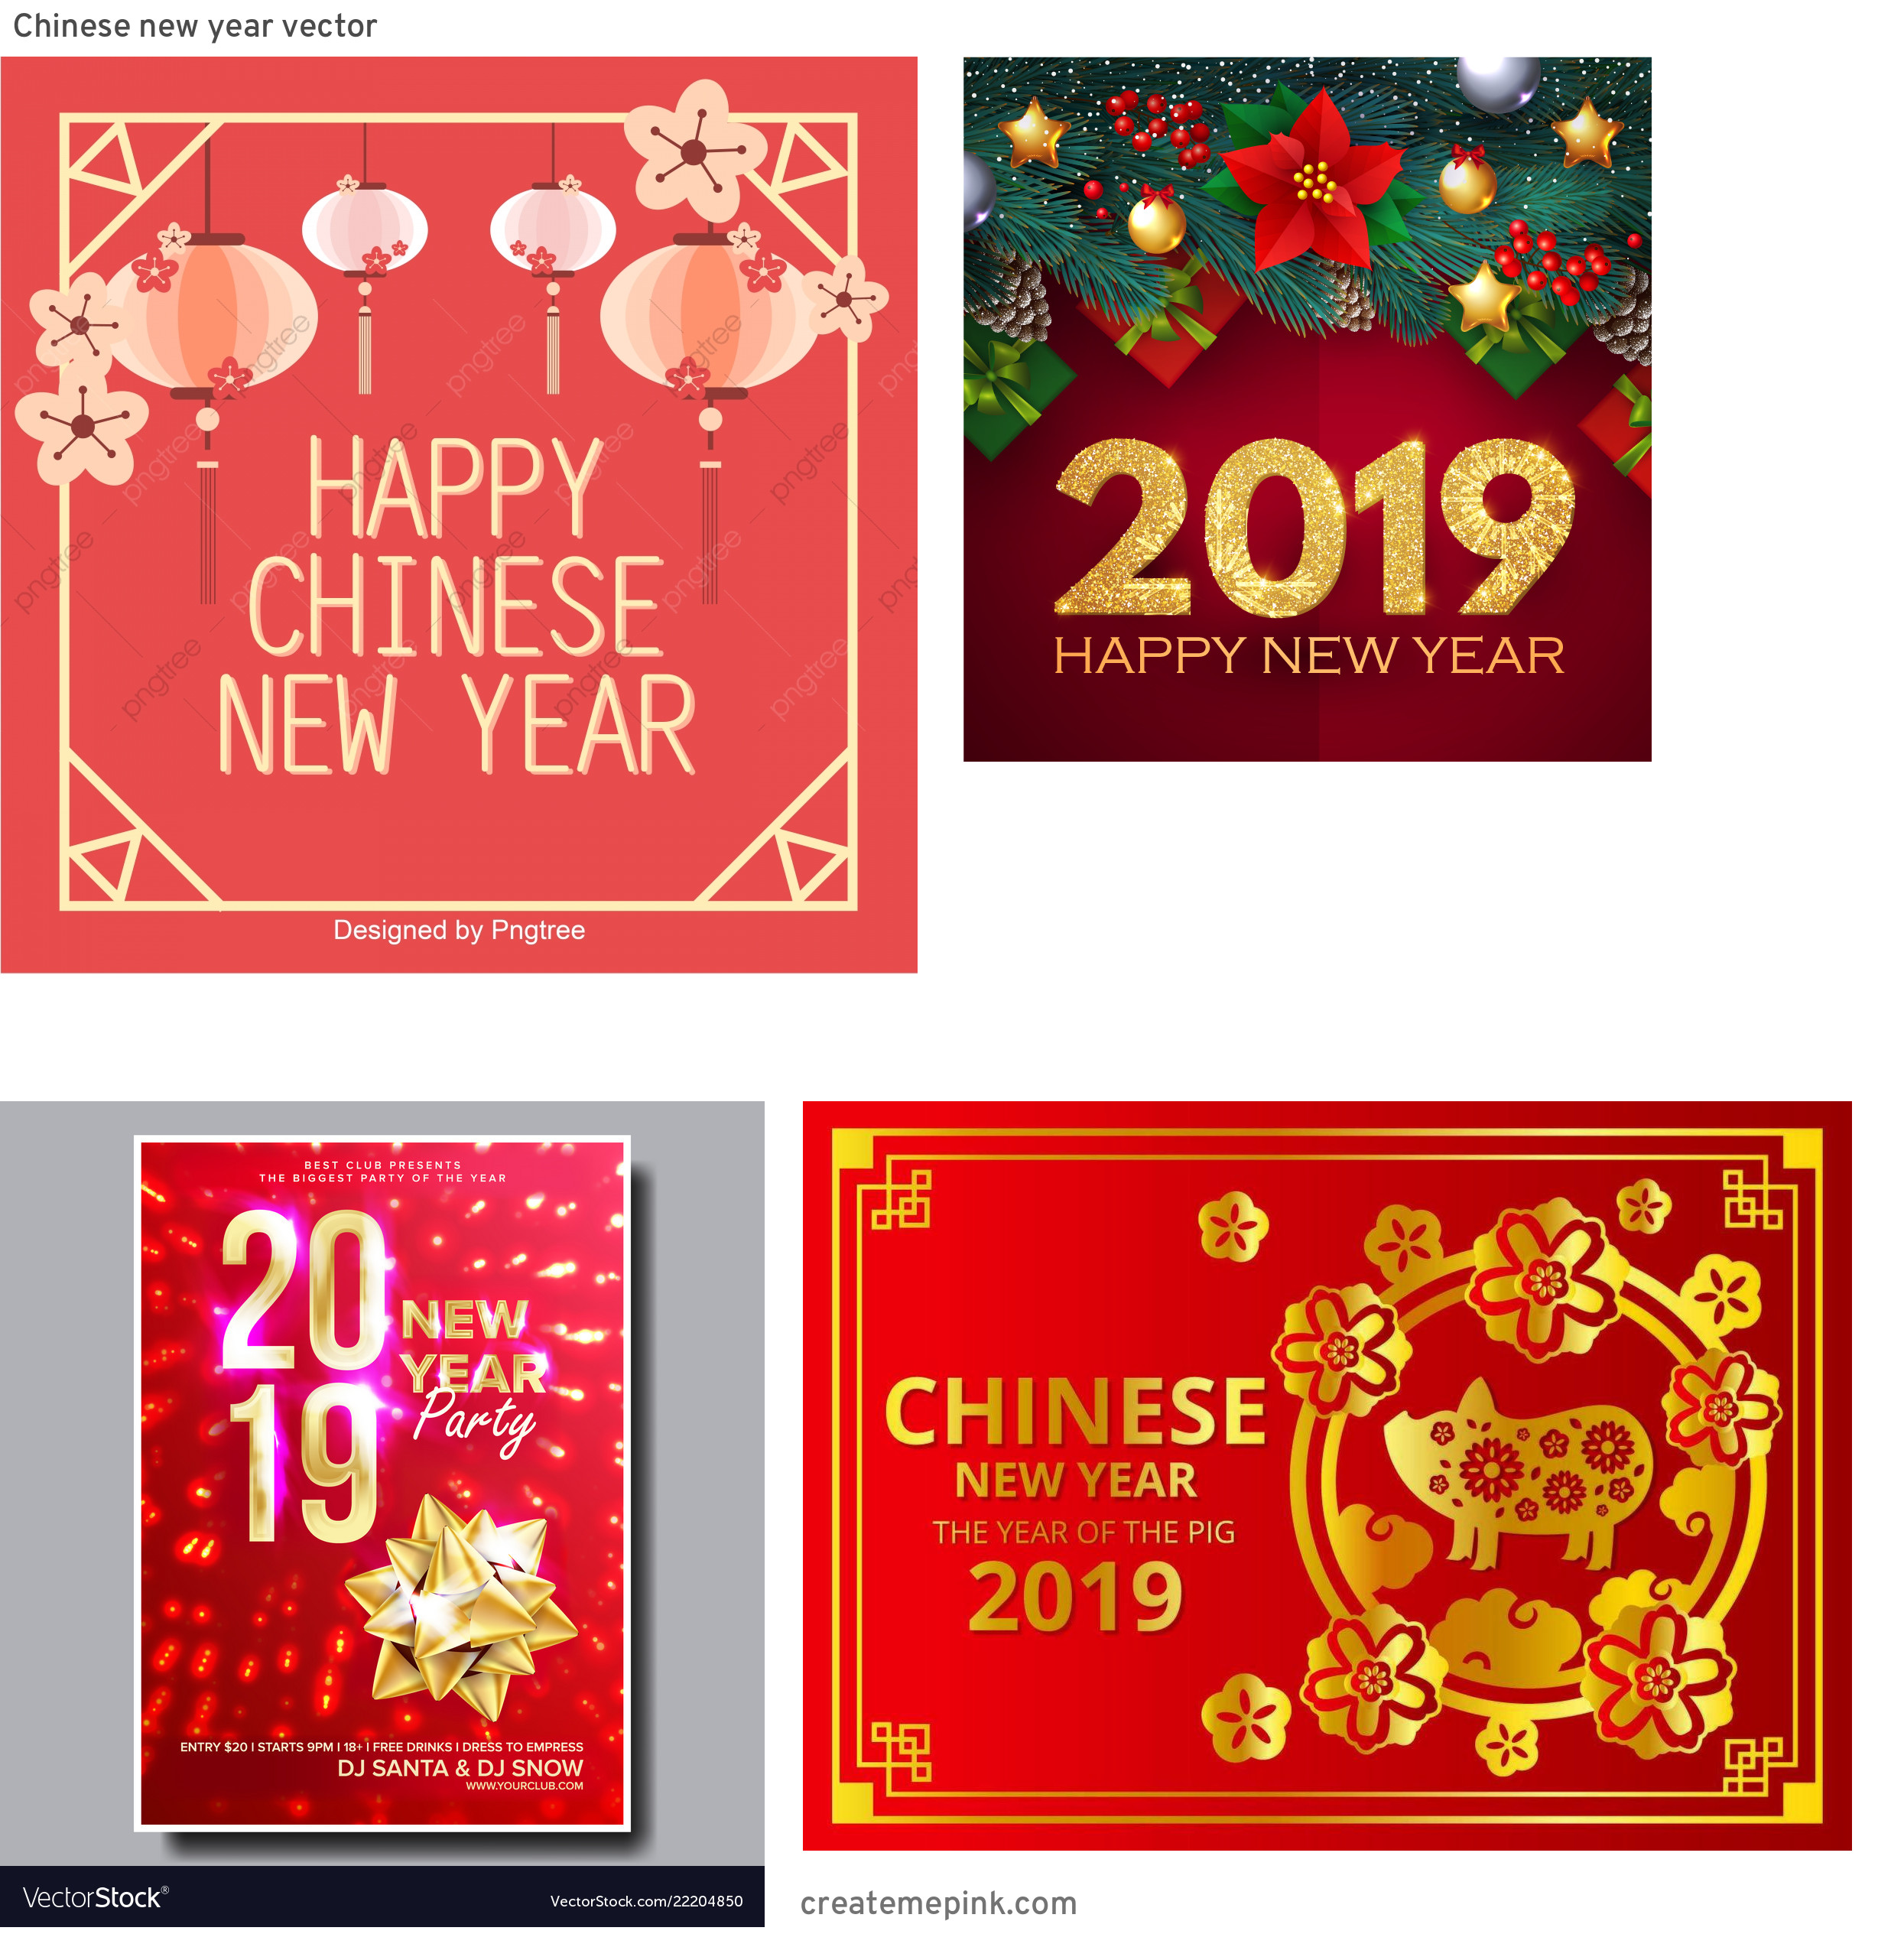 Free New Year Vector: Chinese New Year Vector